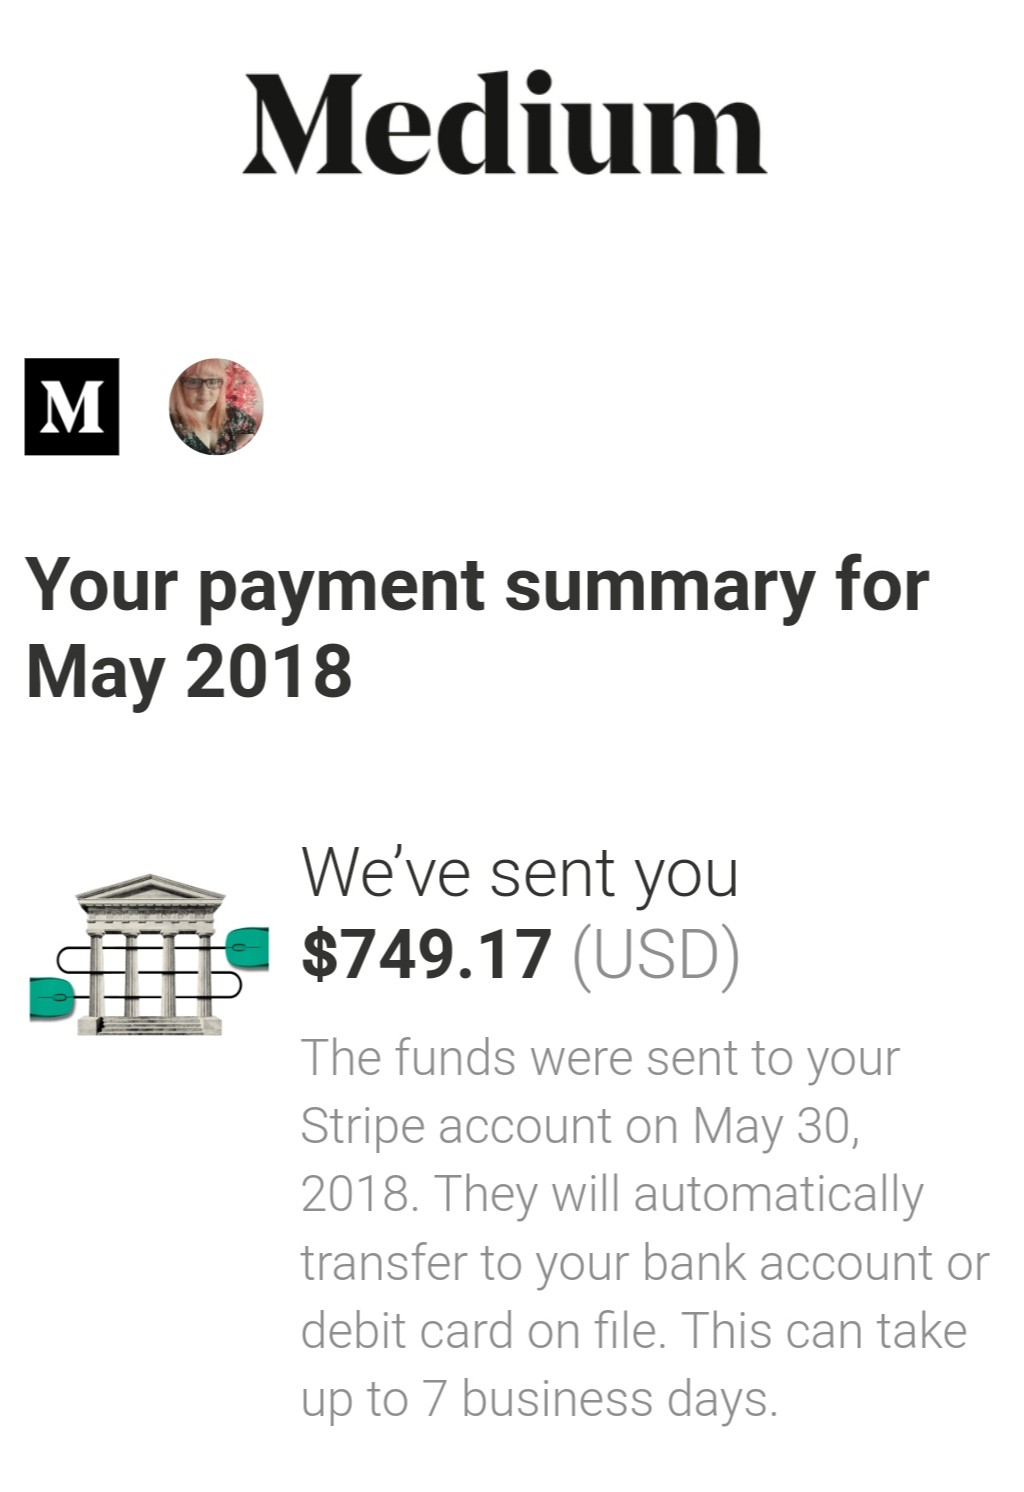 In My First 35 Days on Medium I Earned $750+